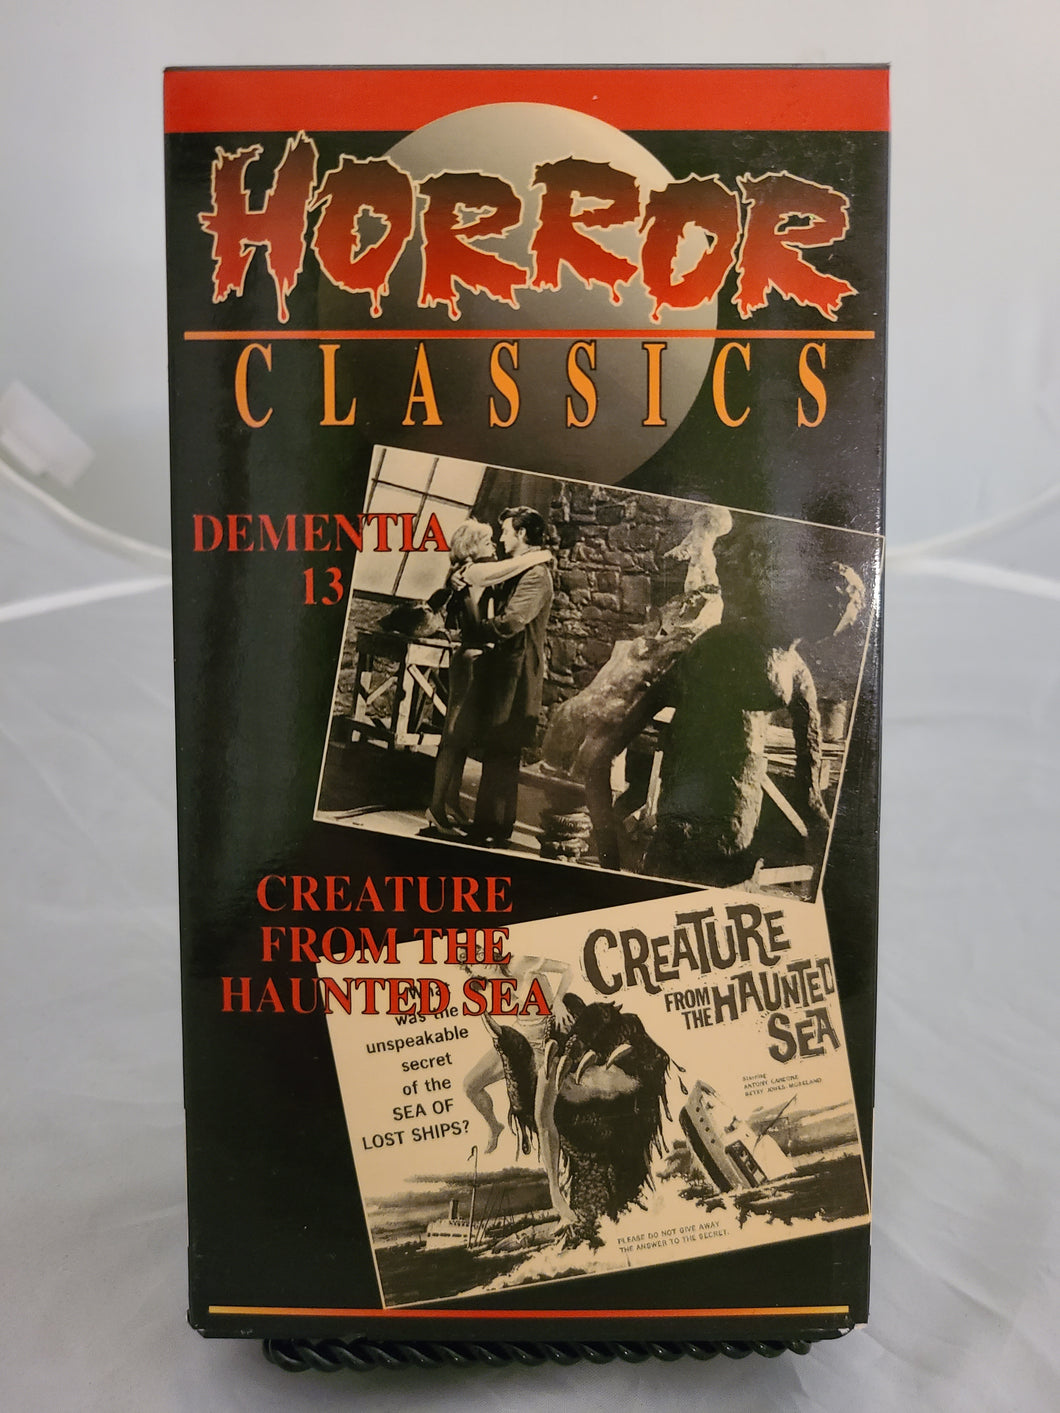 Dementia 13 / Creature from the Sea VHS